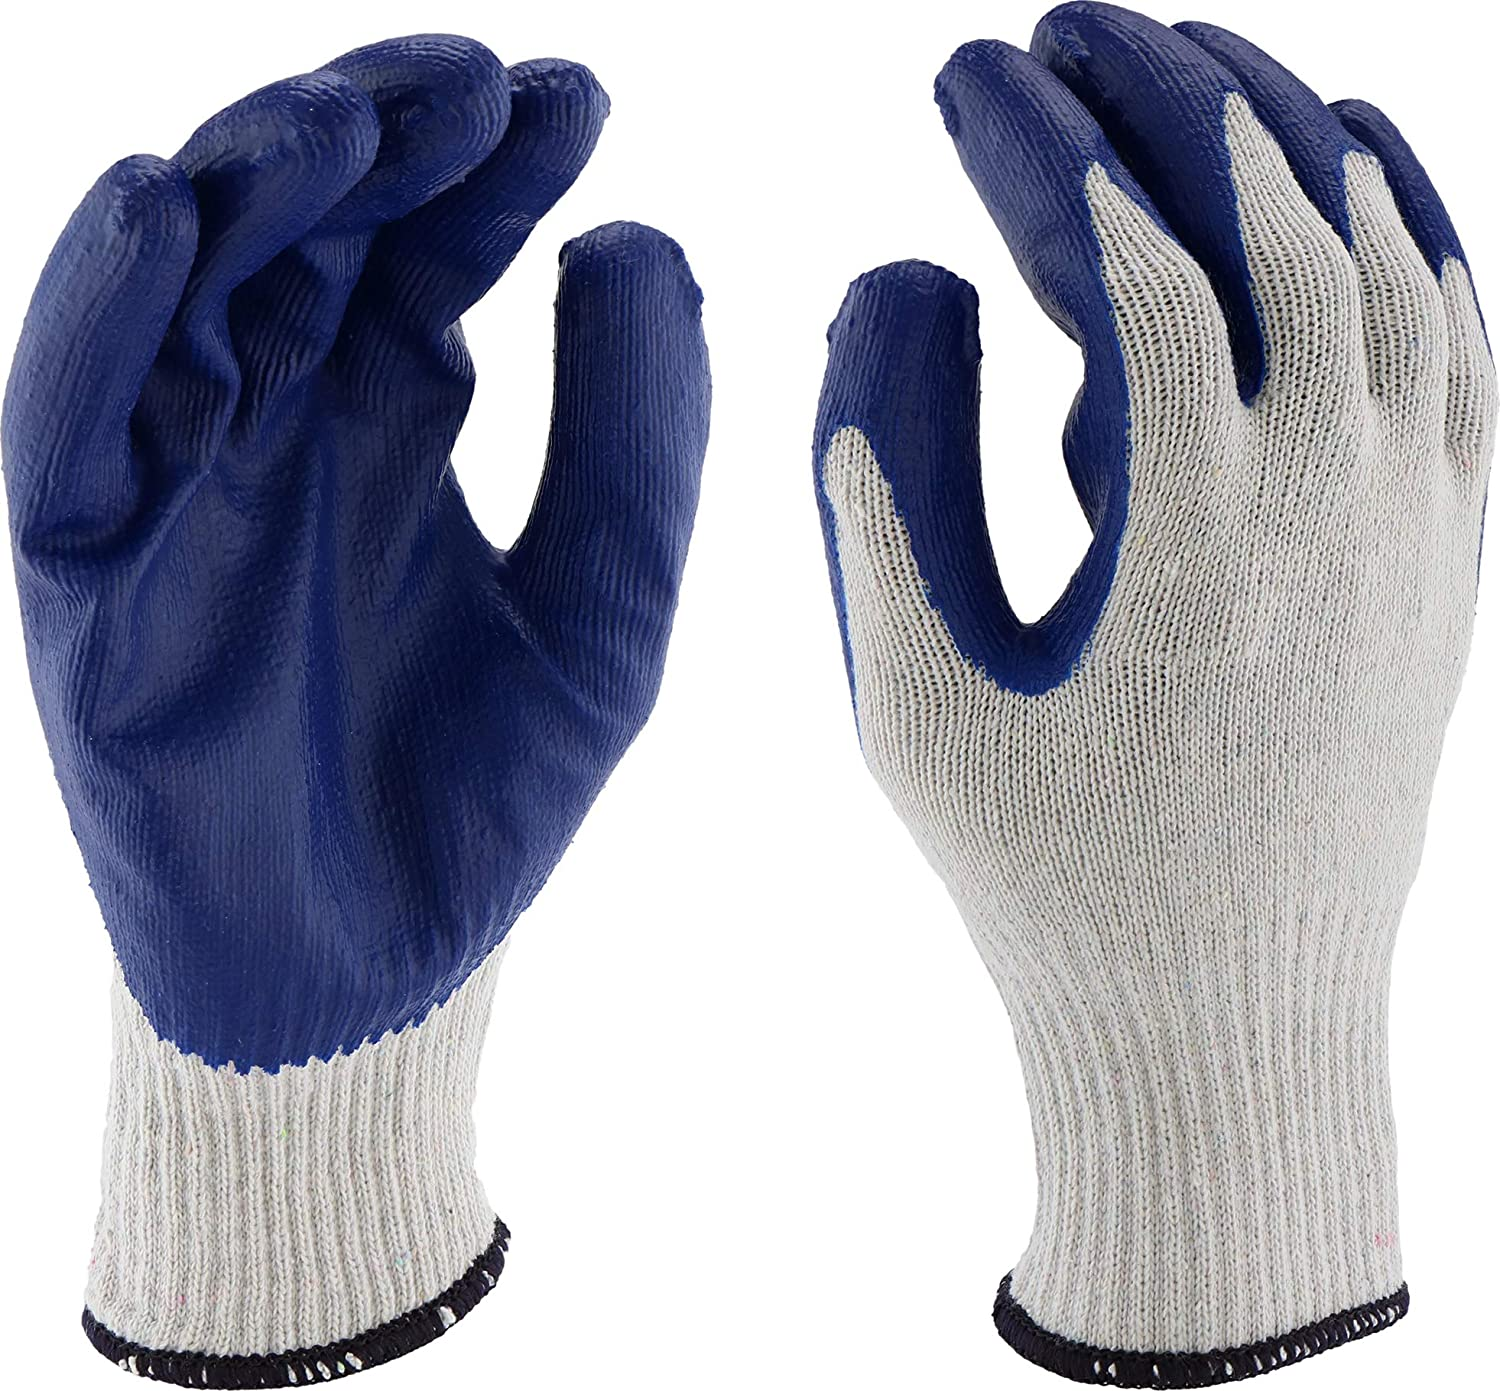 30 PAIRS WESTCHESTER ALL PURPOSE LARGE GLOVES